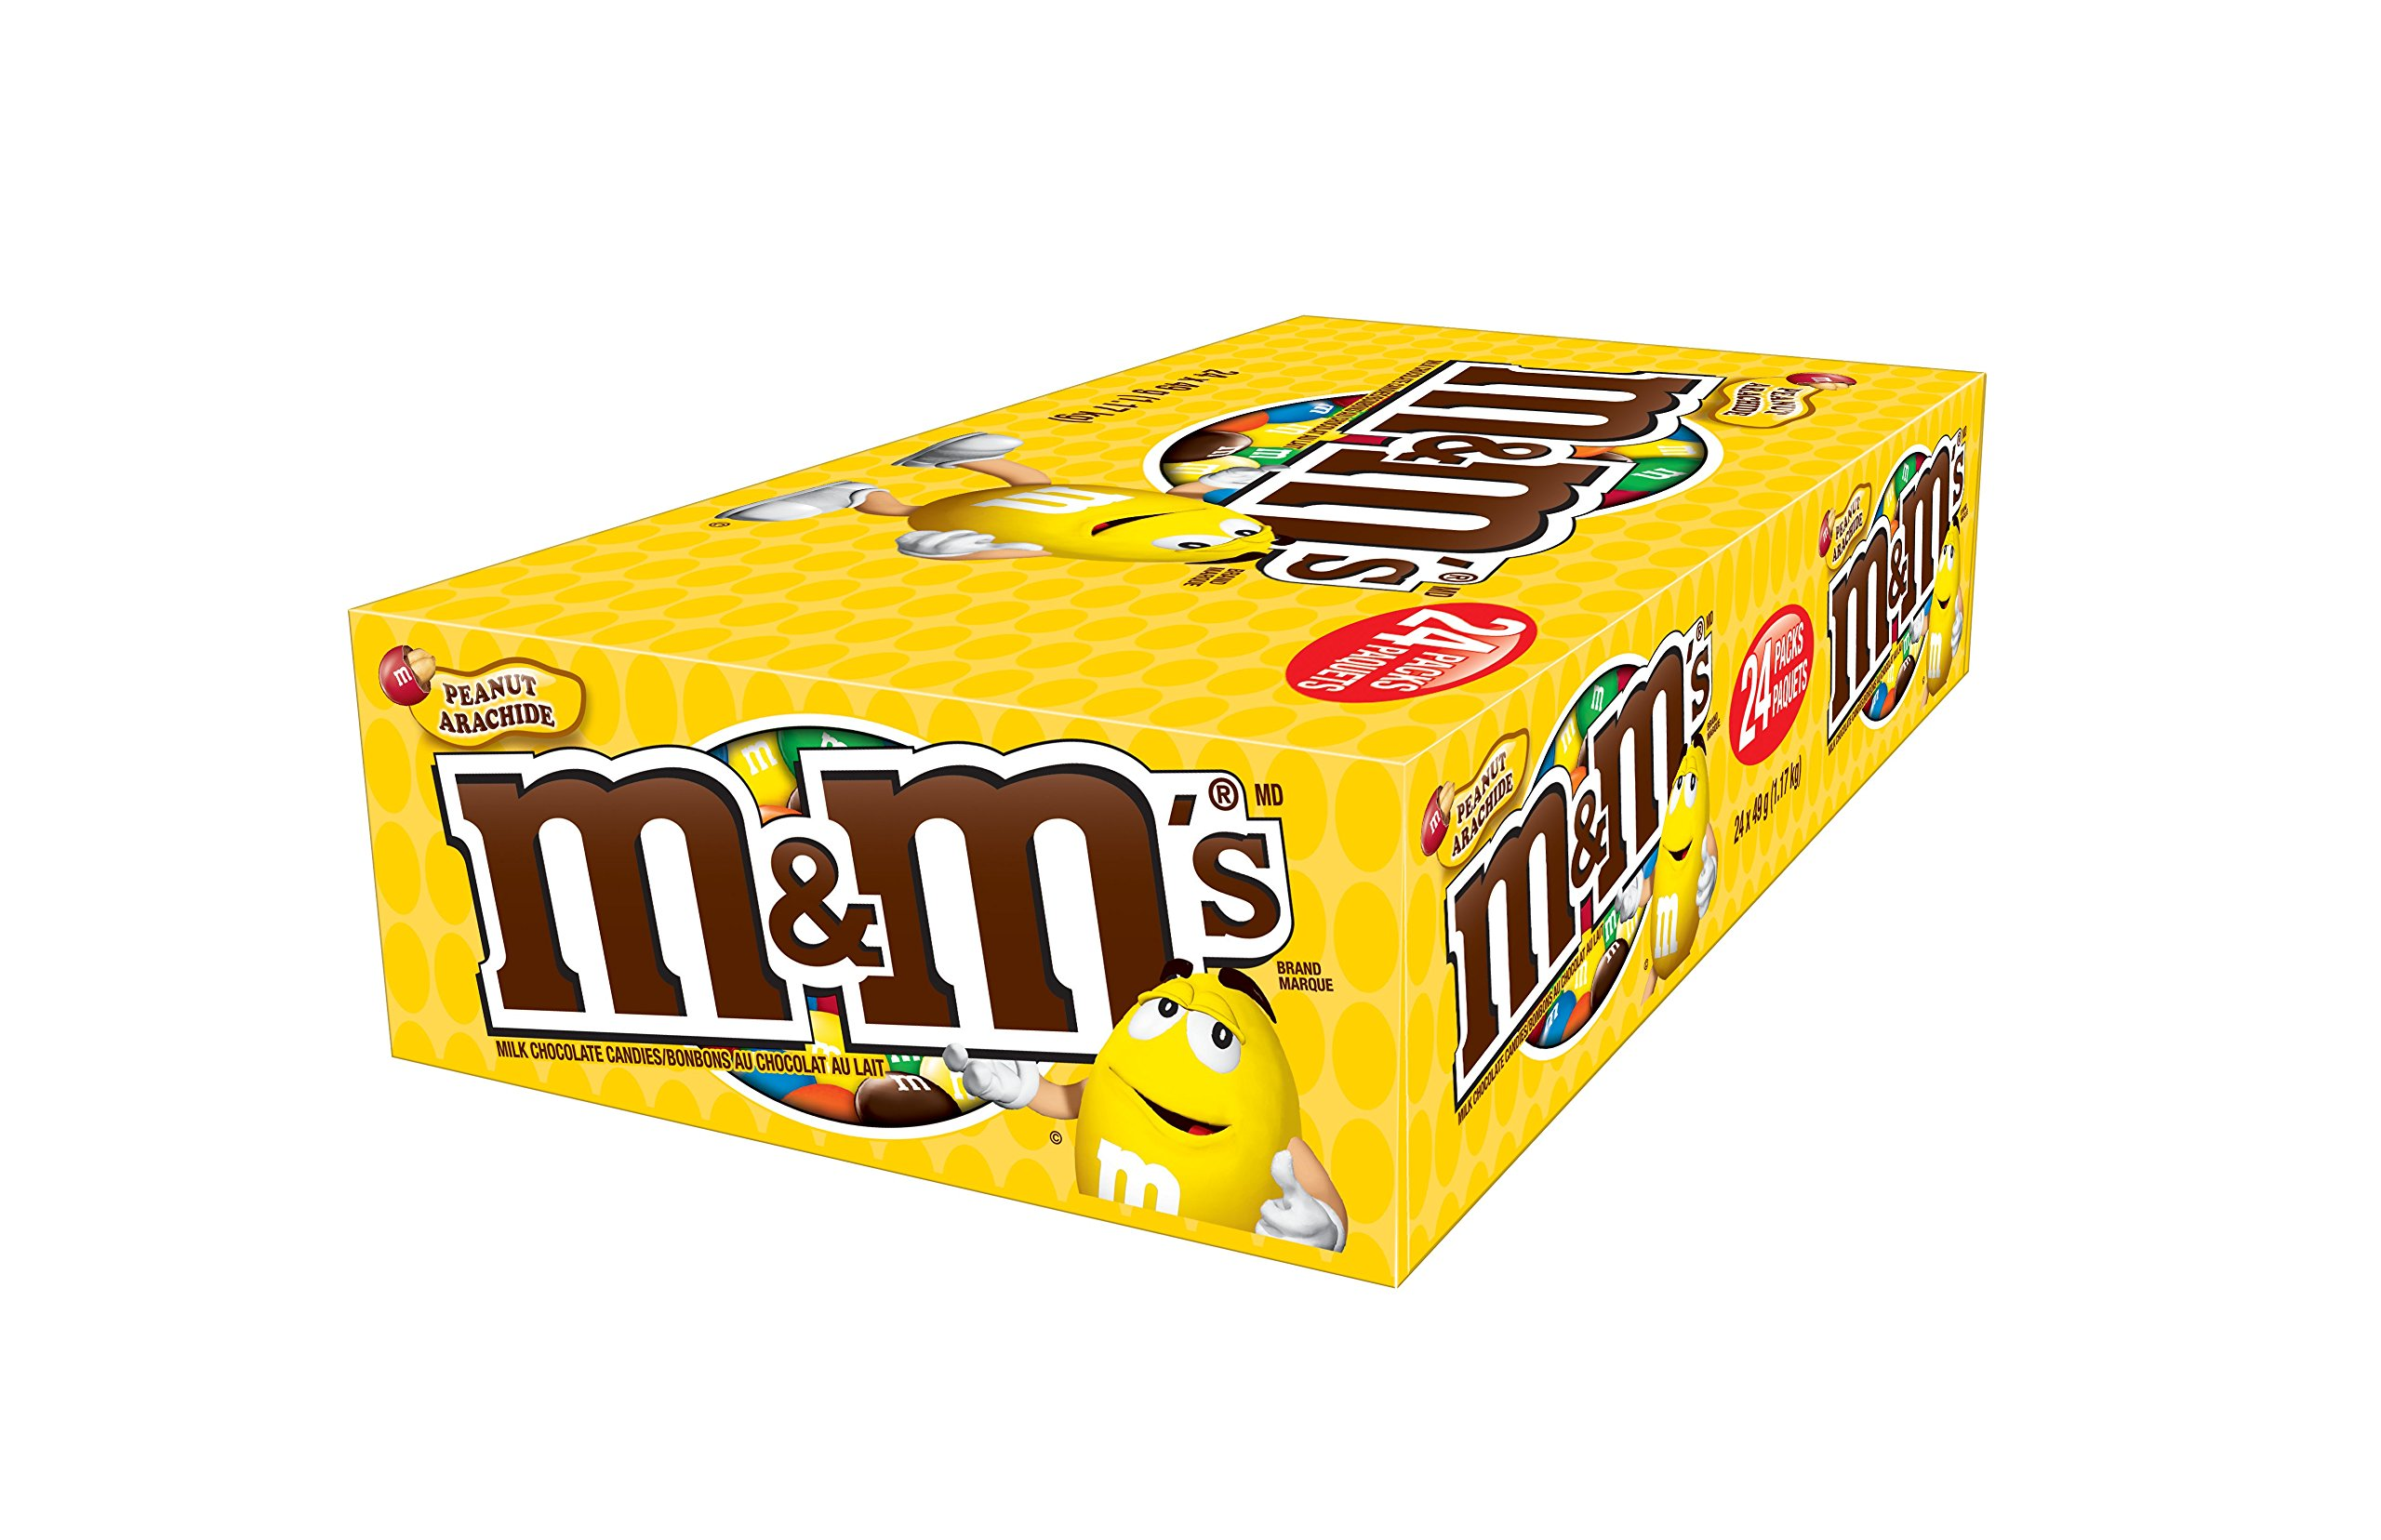 CDM product M&M's Peanut Candies 49g, 24-Count small thumbnail image